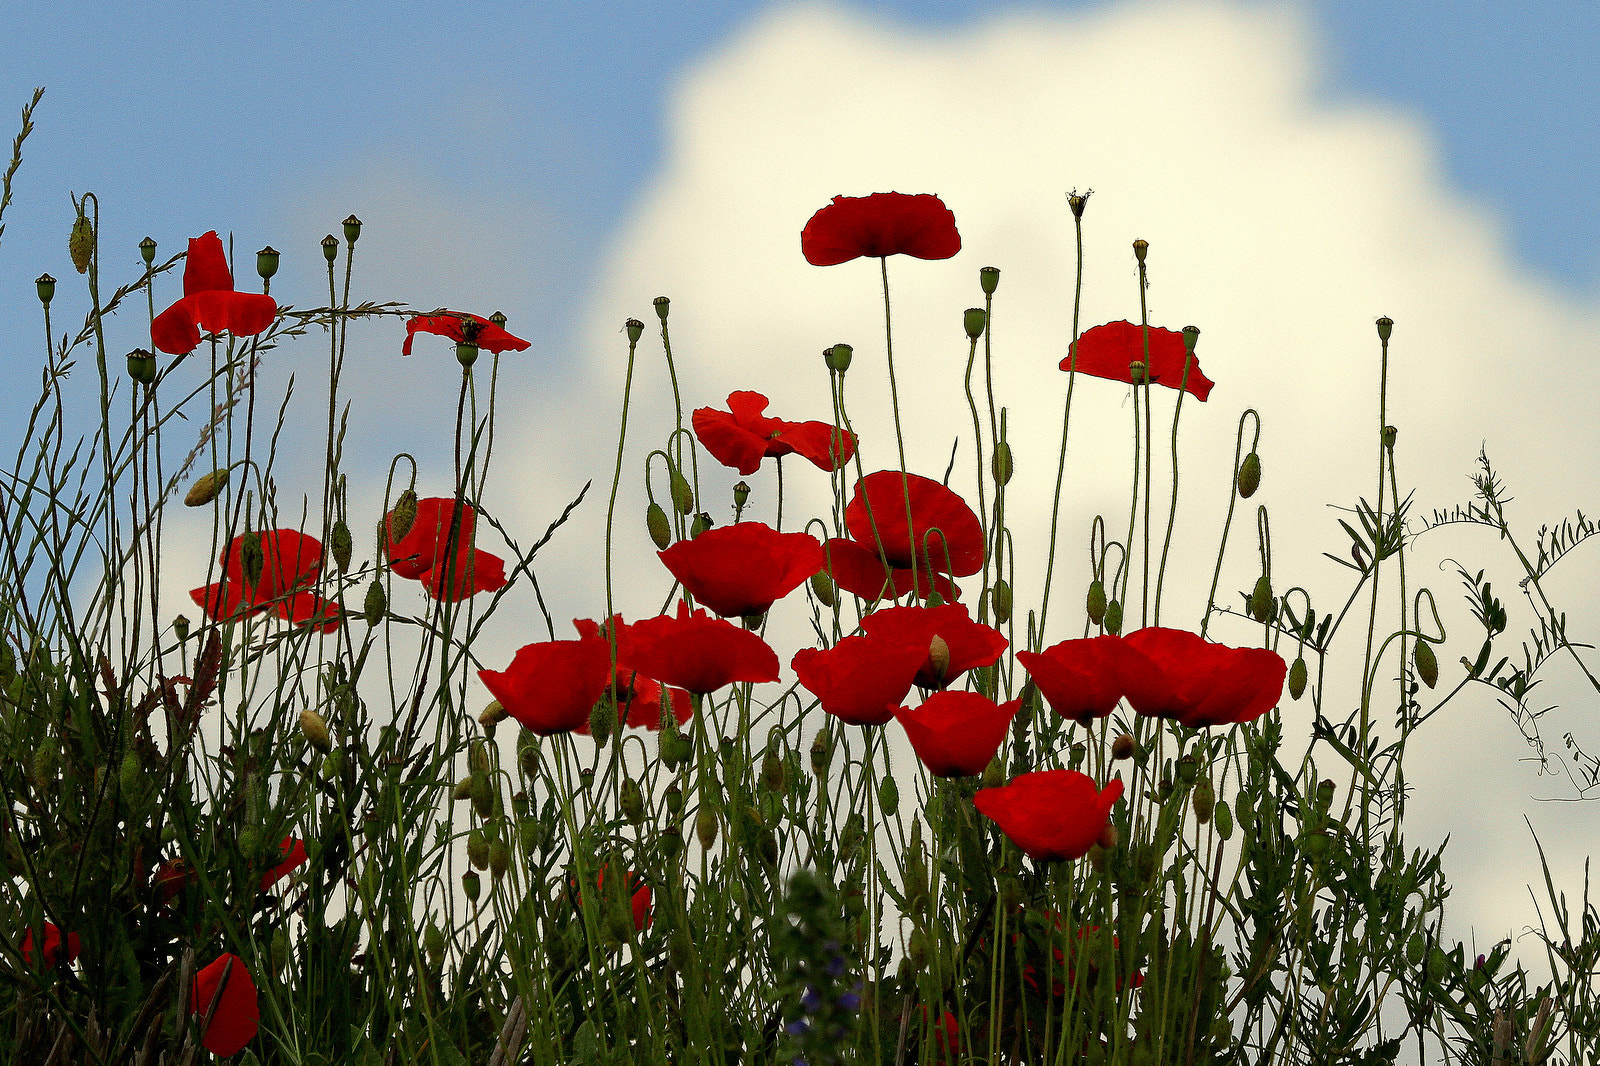 Photograph Red Poppies by Rainer Leiss on 500px